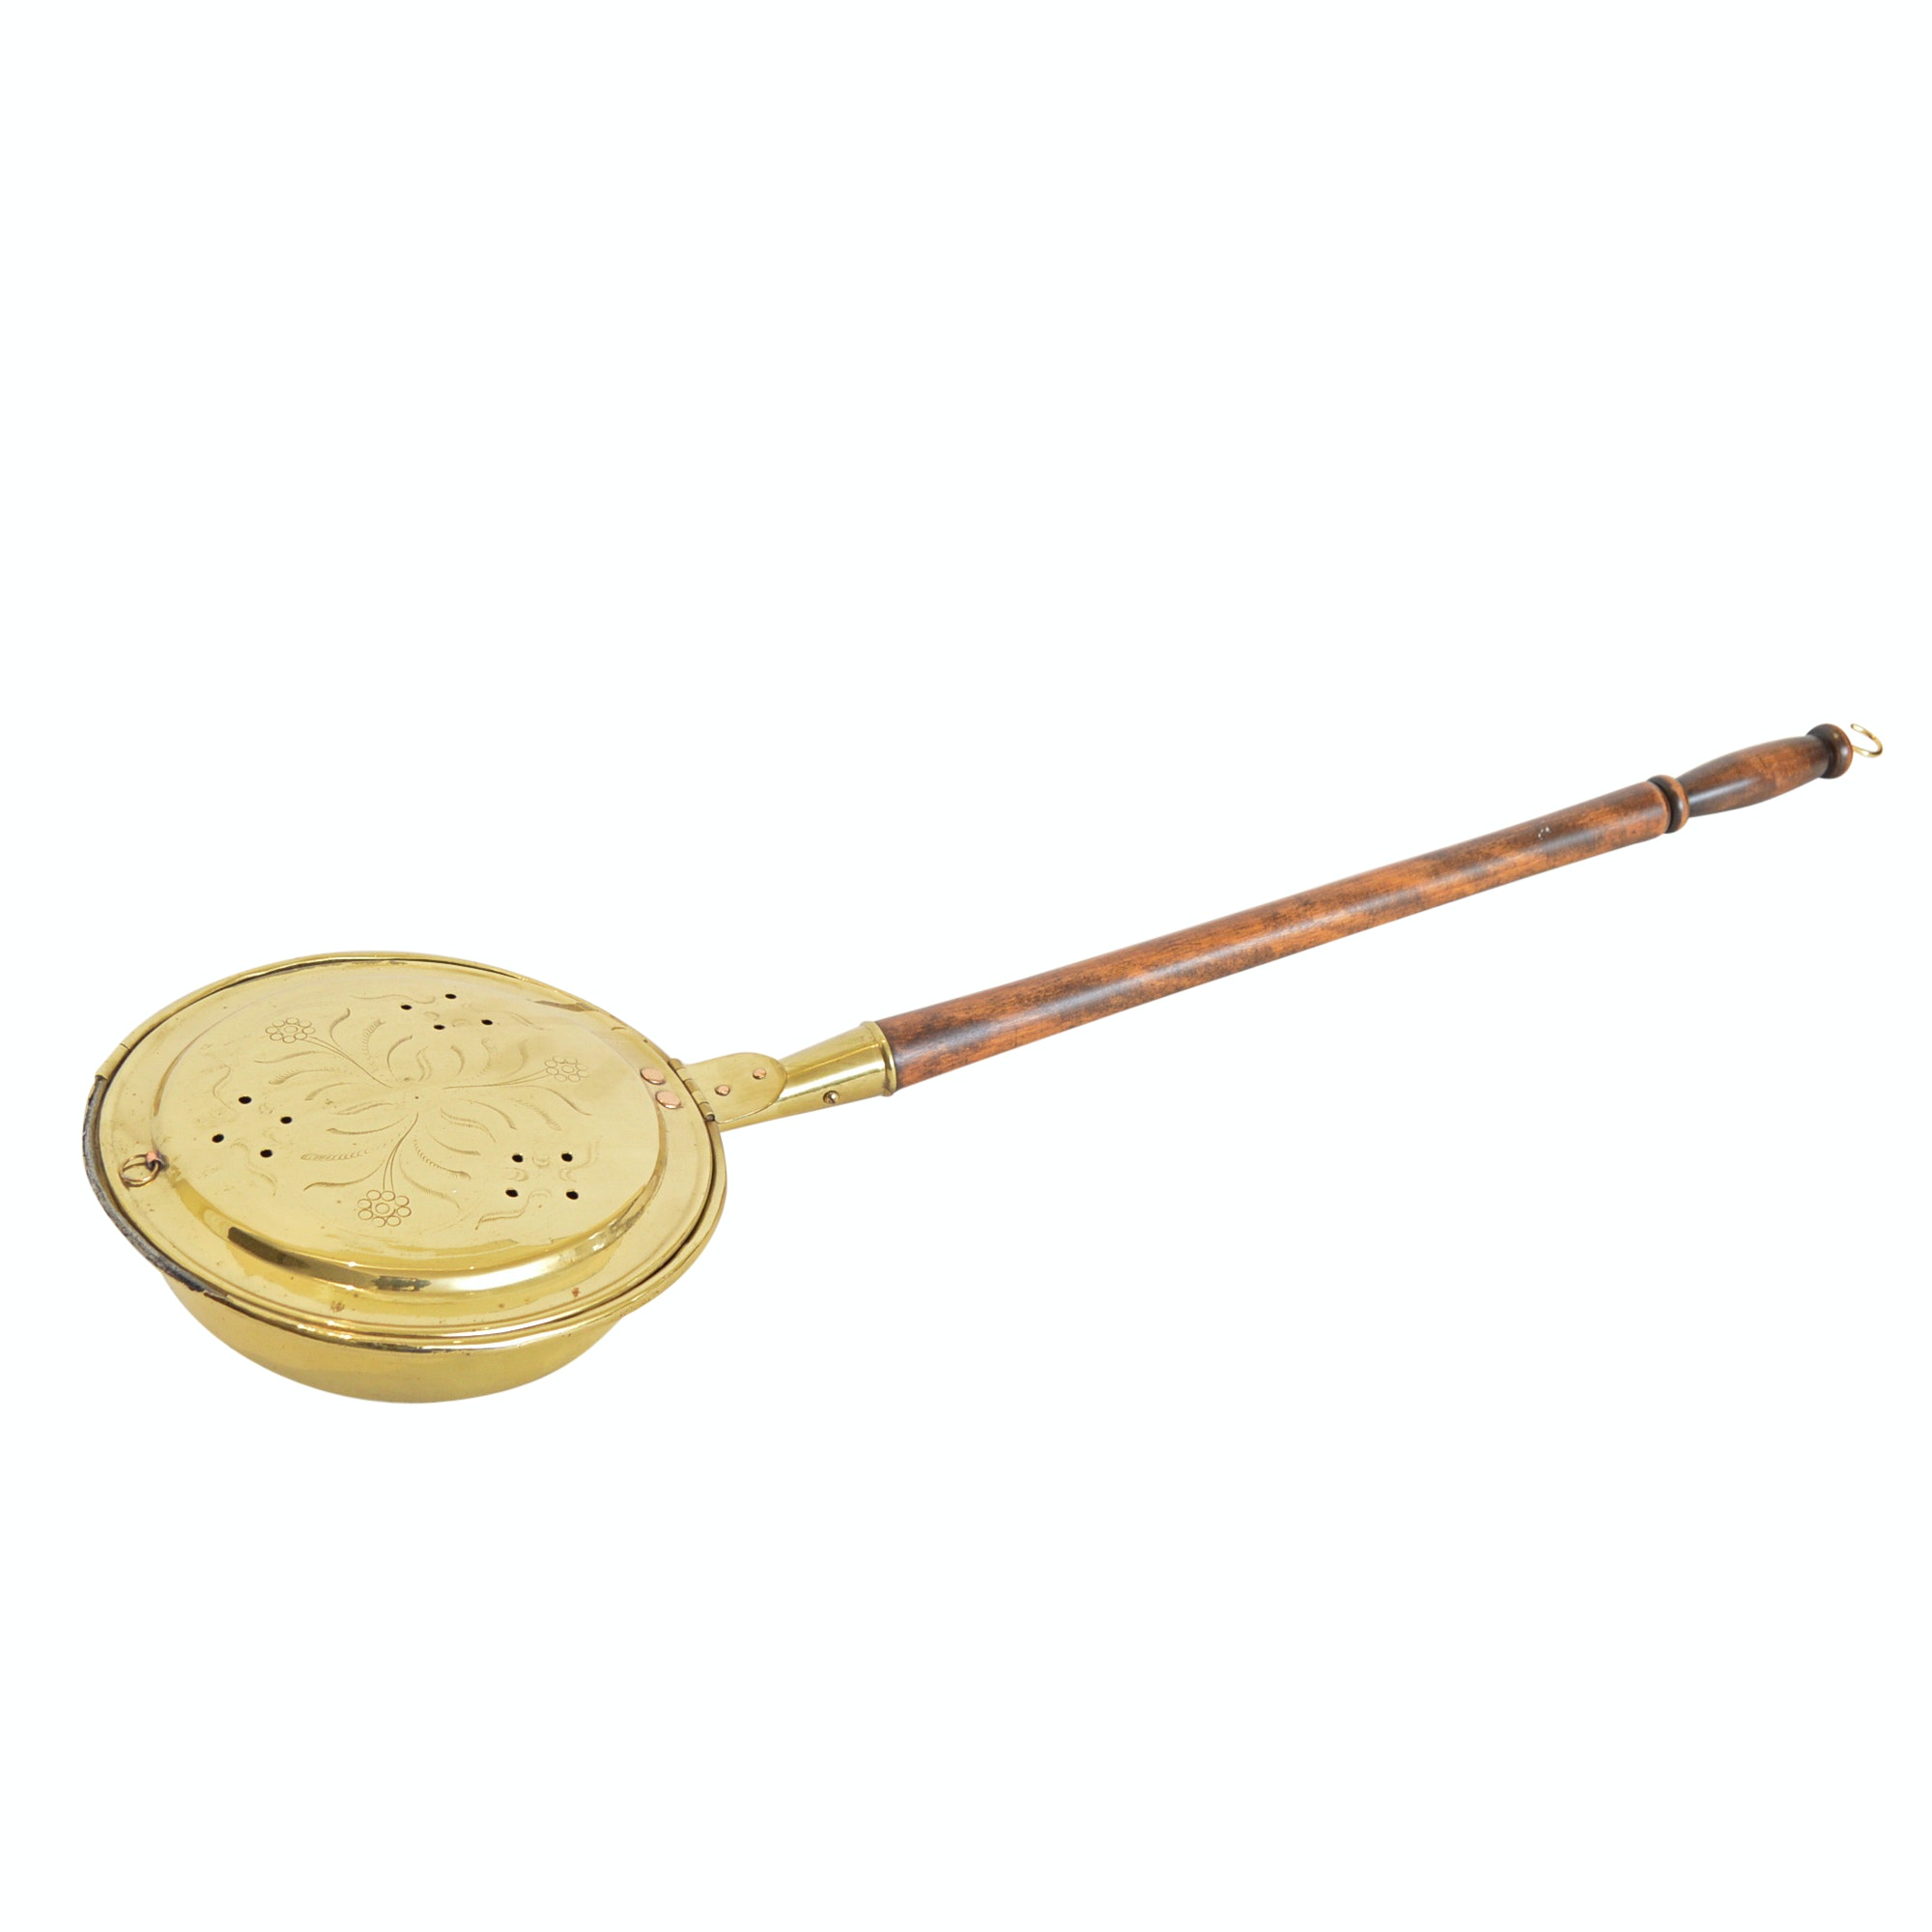 Antique Brass Warming Pan